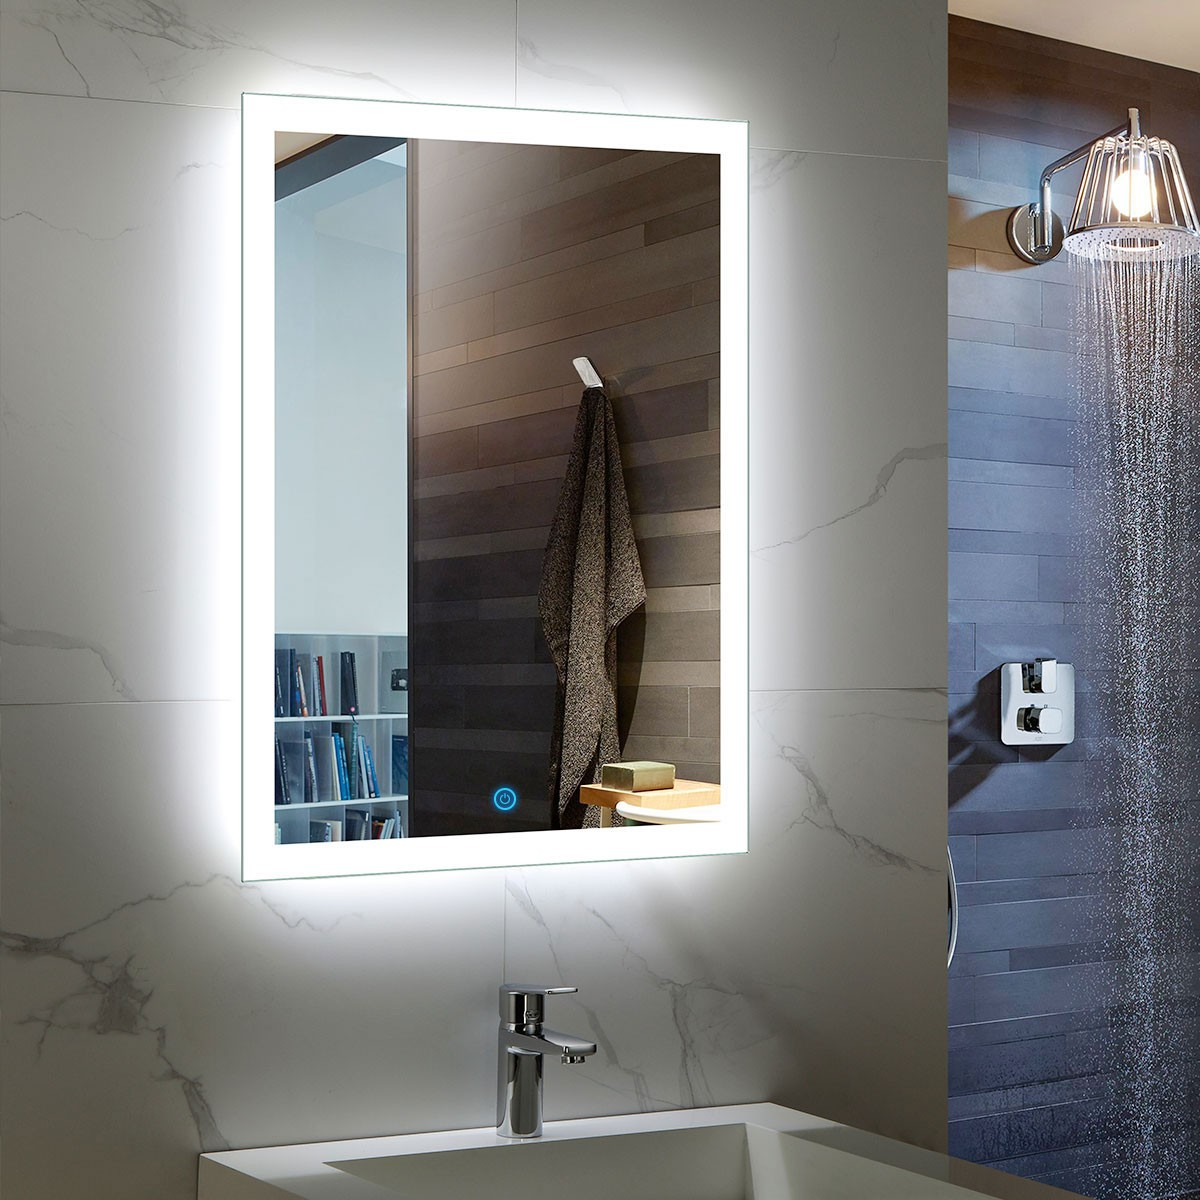 24 x 32 In Vertical LED Mirror, Touch Button (DK-OD-N031)